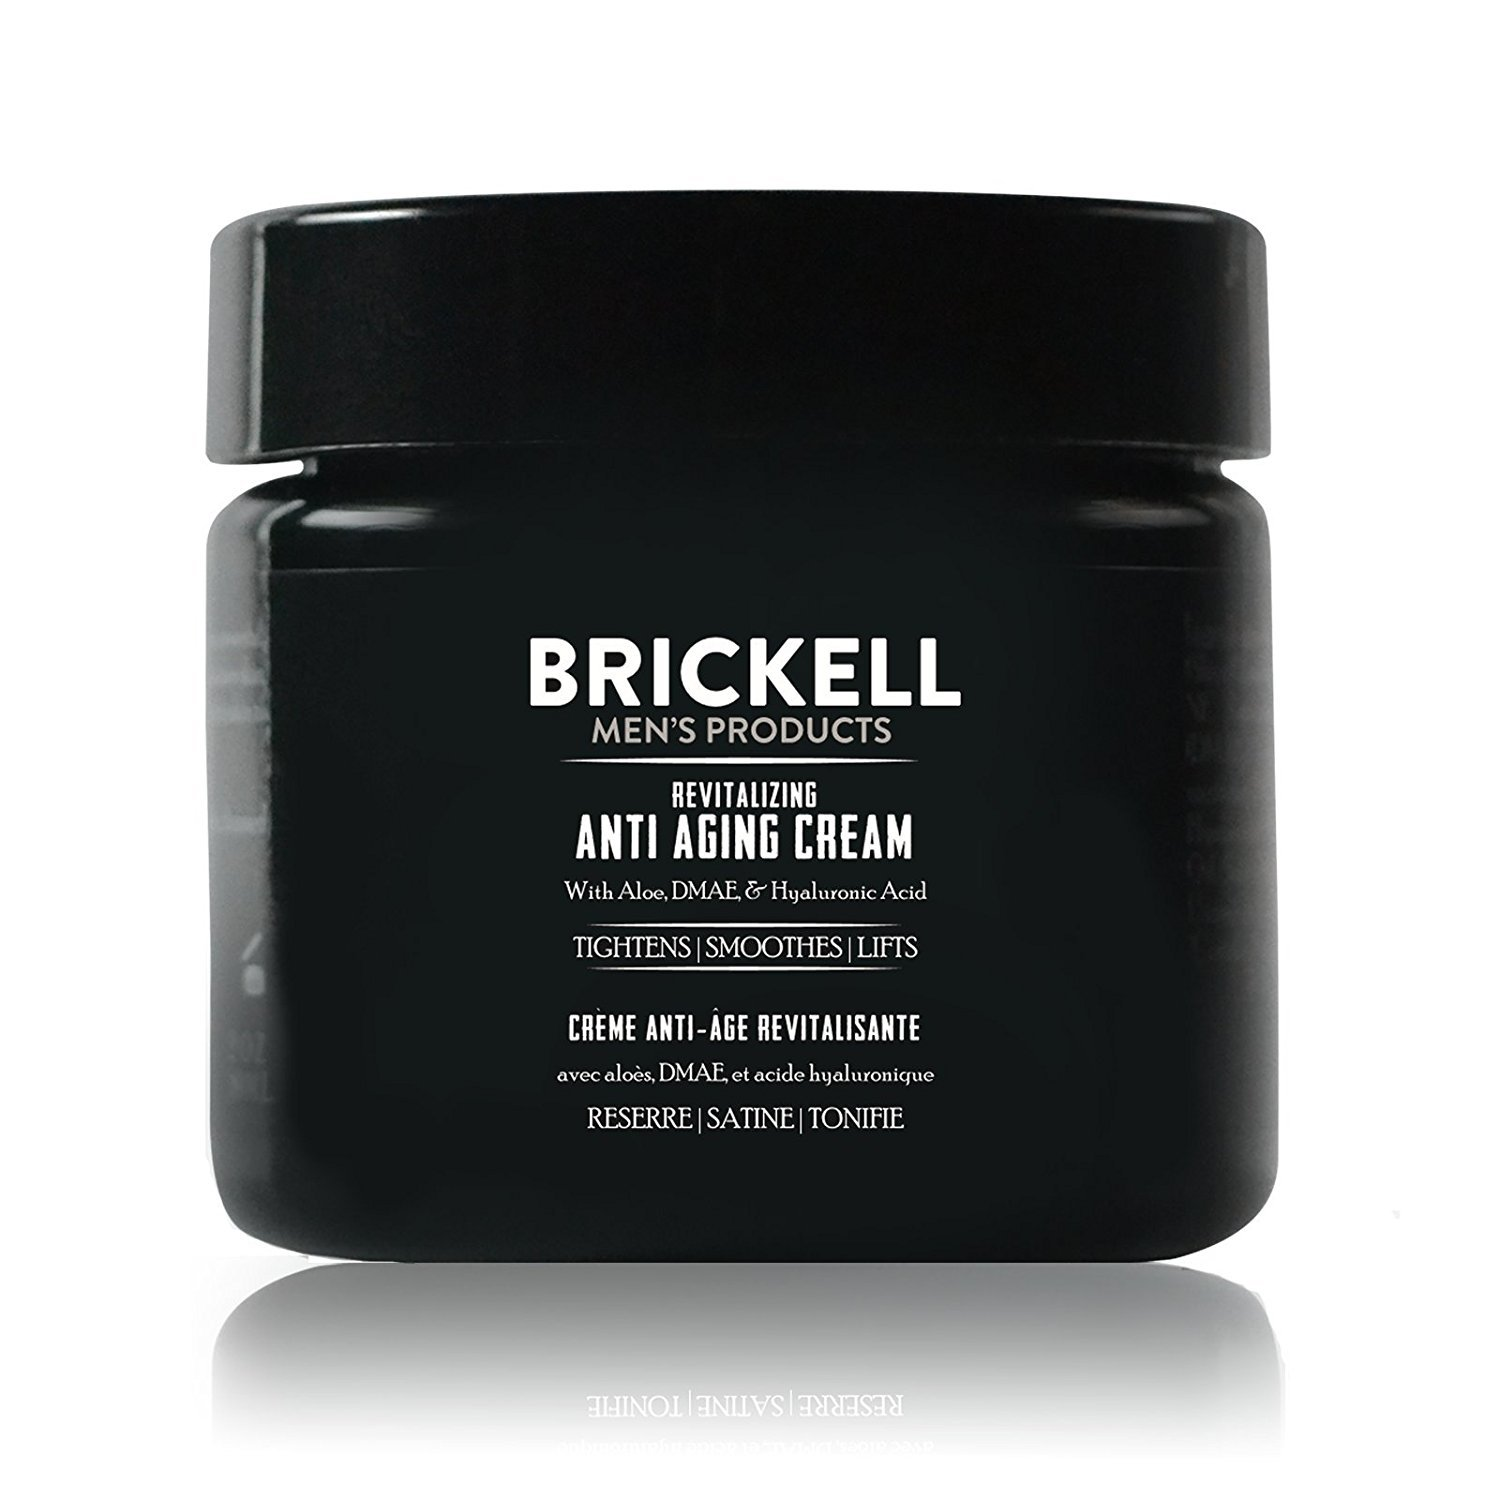 Brickell Men's Revitalizing Anti-Aging Cream For Men, Natural & Organic Anti Wrinkle Night Face Cream - 2 oz - Unscented